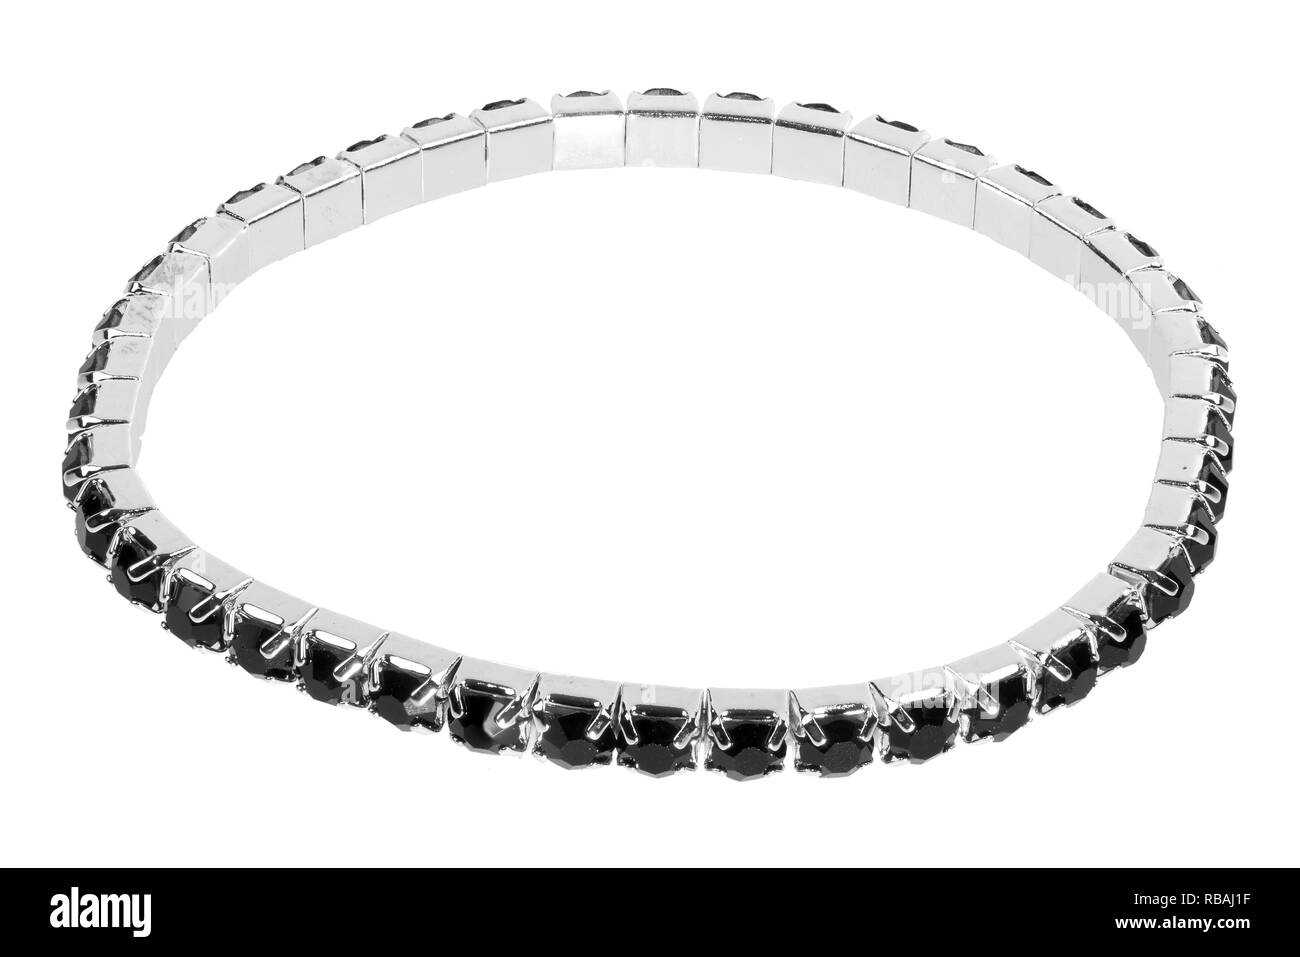 Silver bracelet with black precious stones and gems, isolated on white background - Stock Image